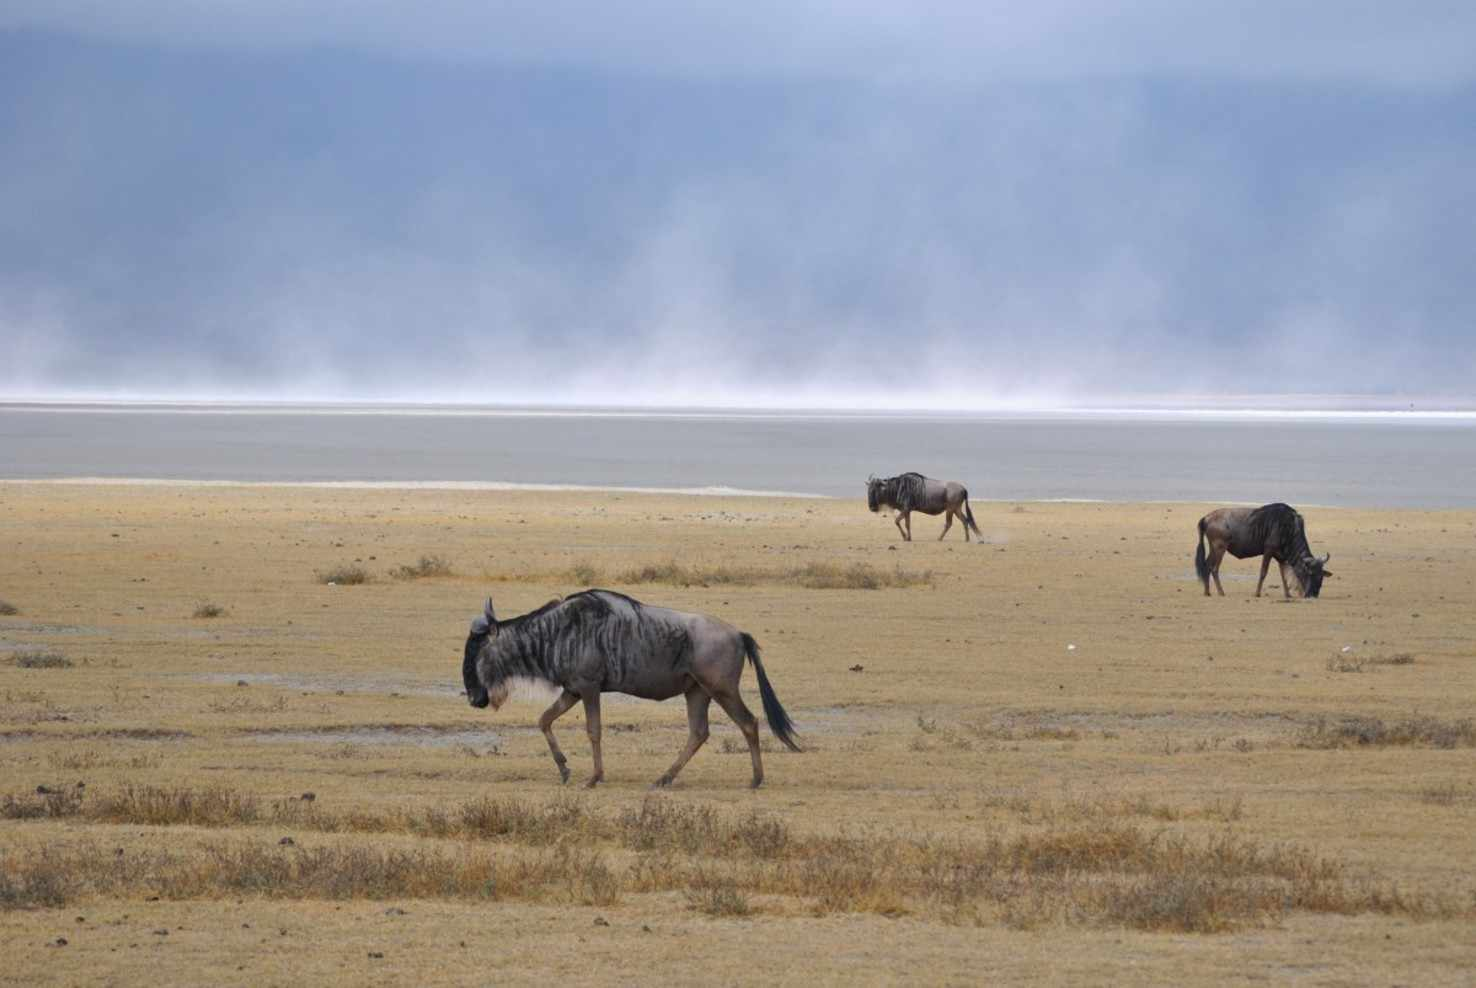 Large ngorongoro crater salt lake gnu wild animals africa national park tanzania